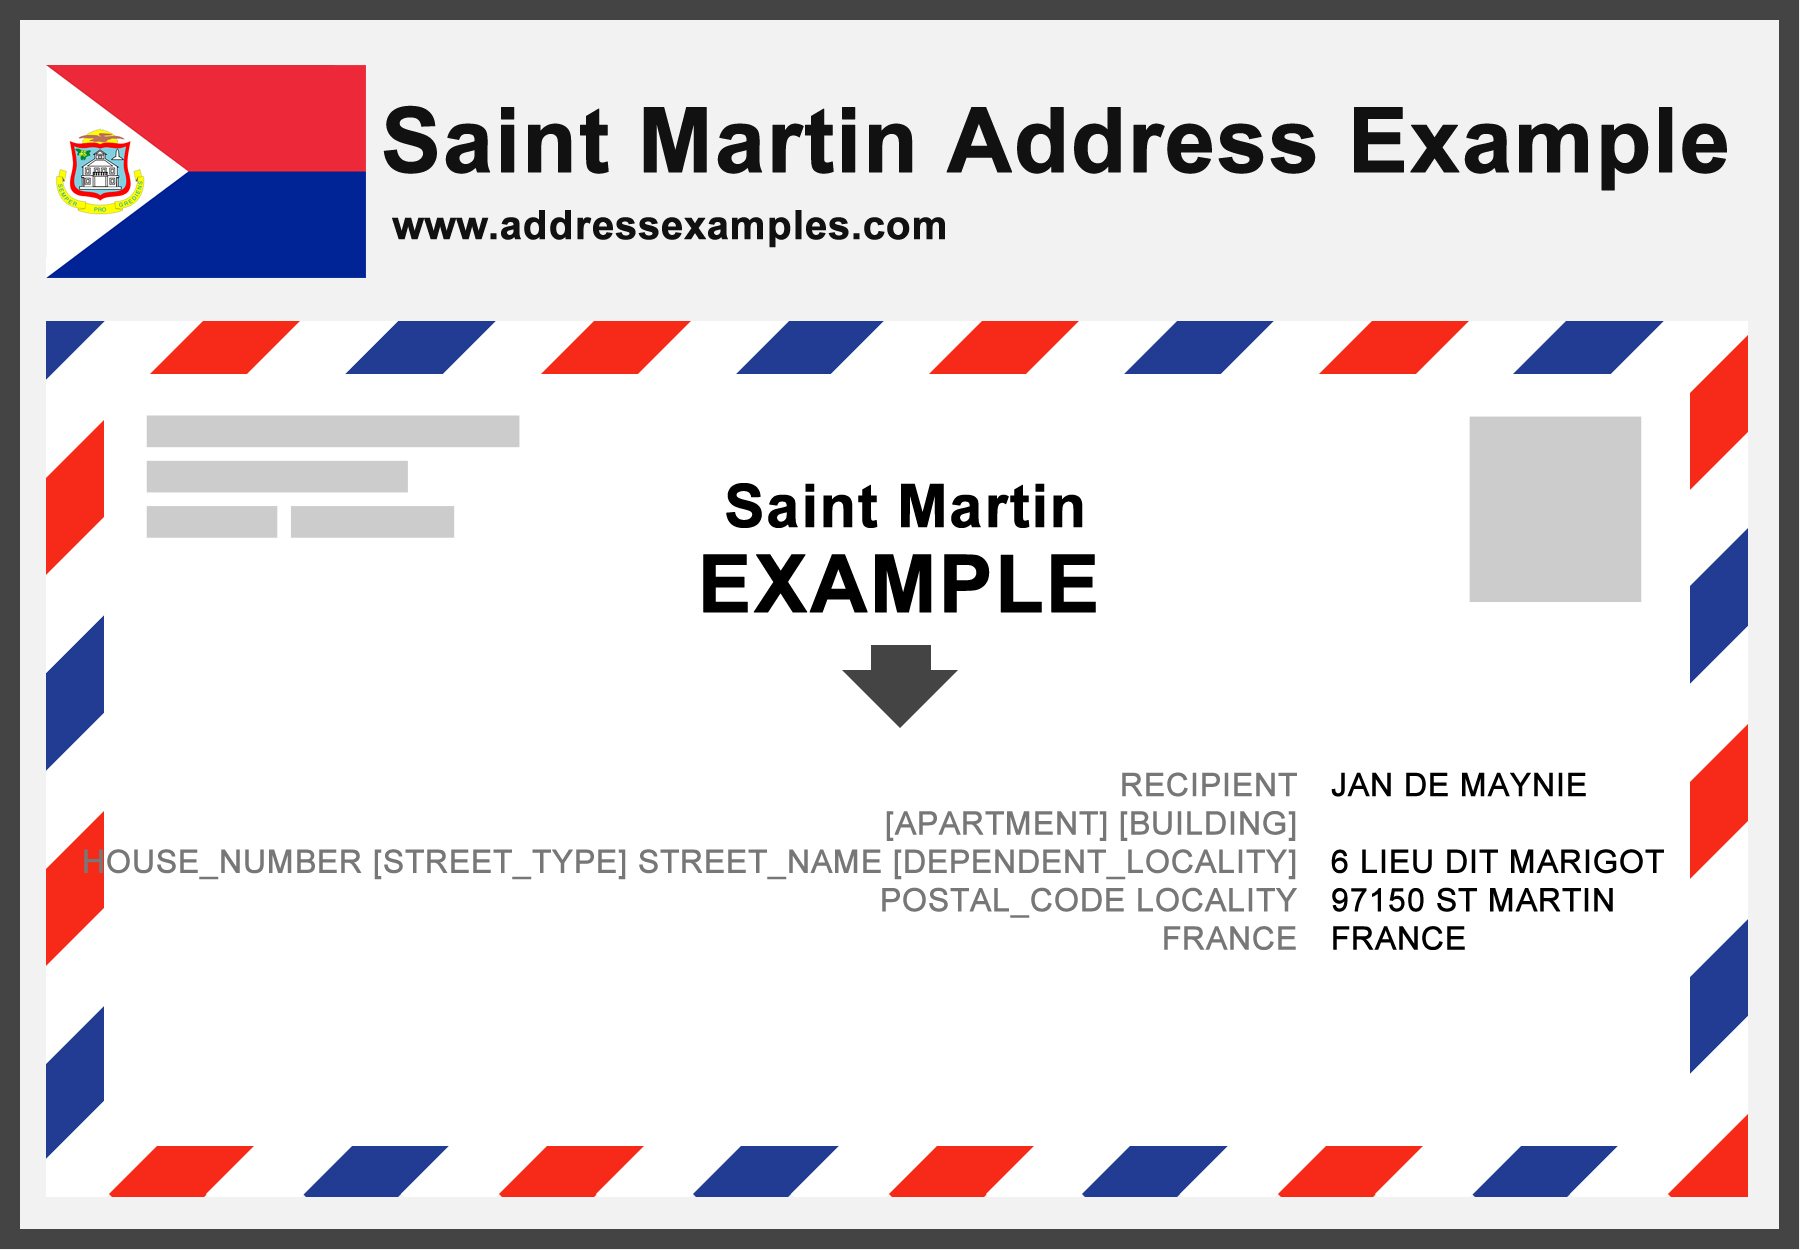 Saint Martin Address Example